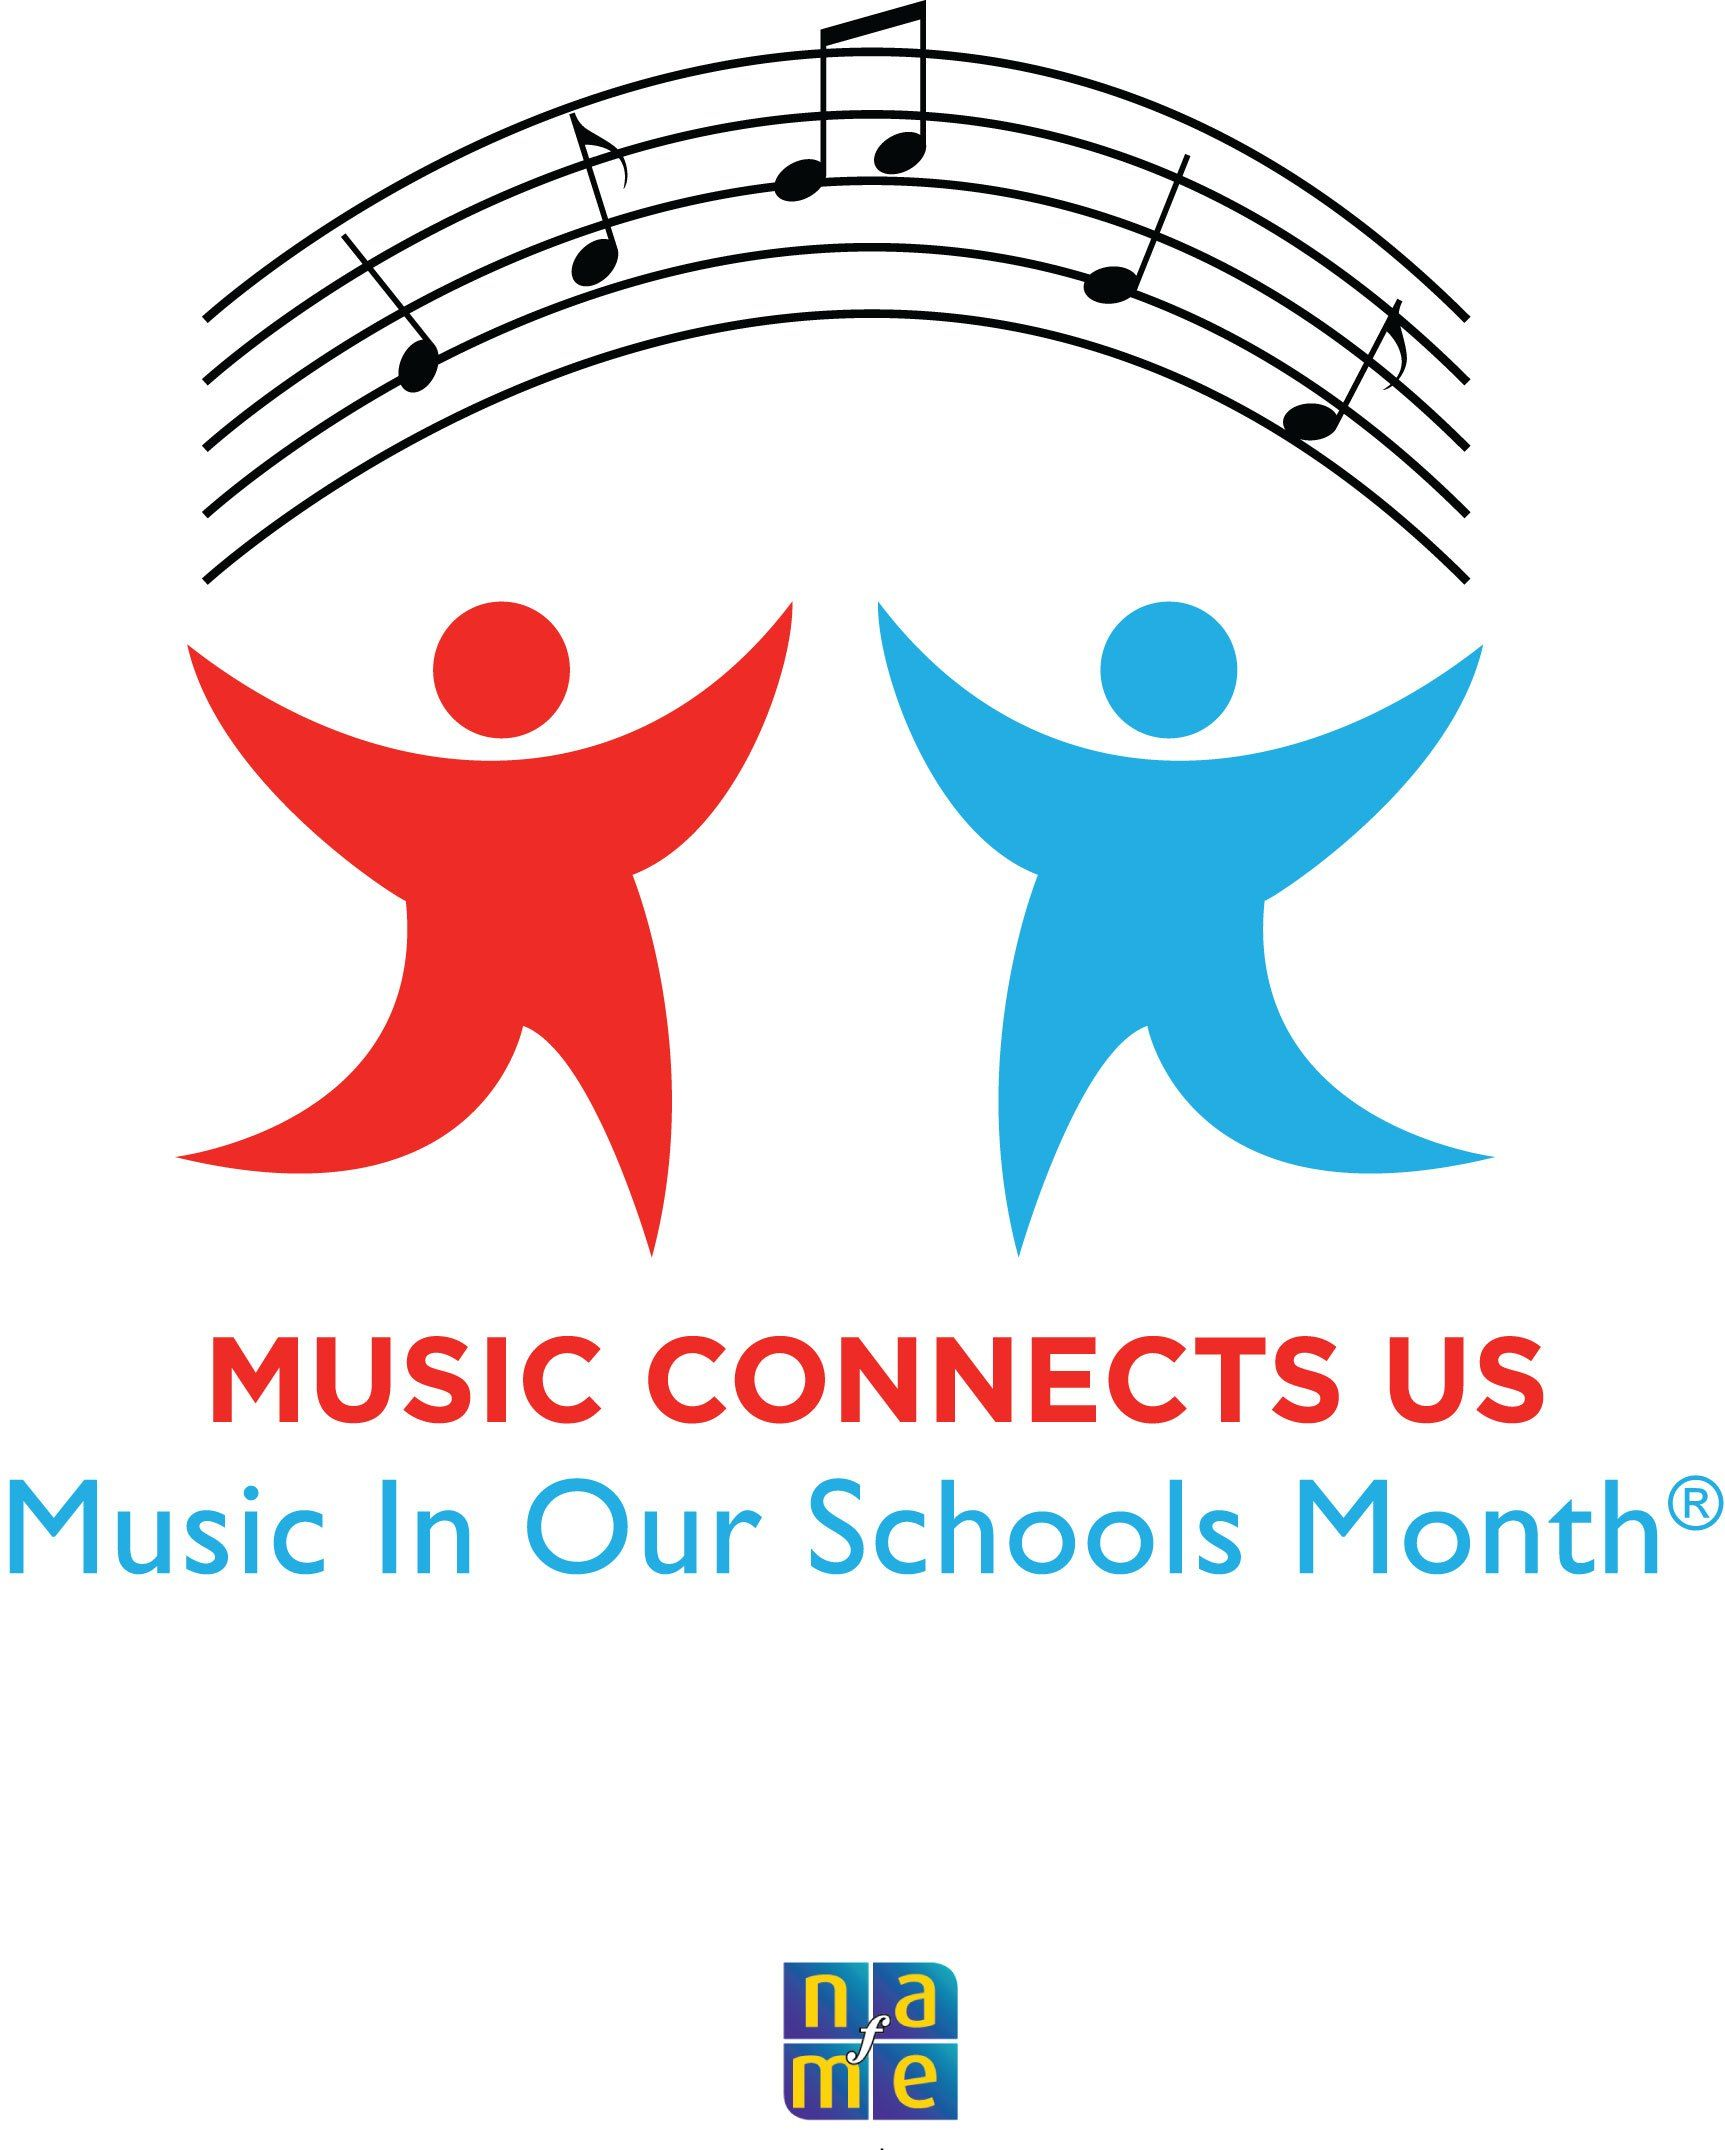 Pin By Bea Lincoln On Music Education Ideas Plans And